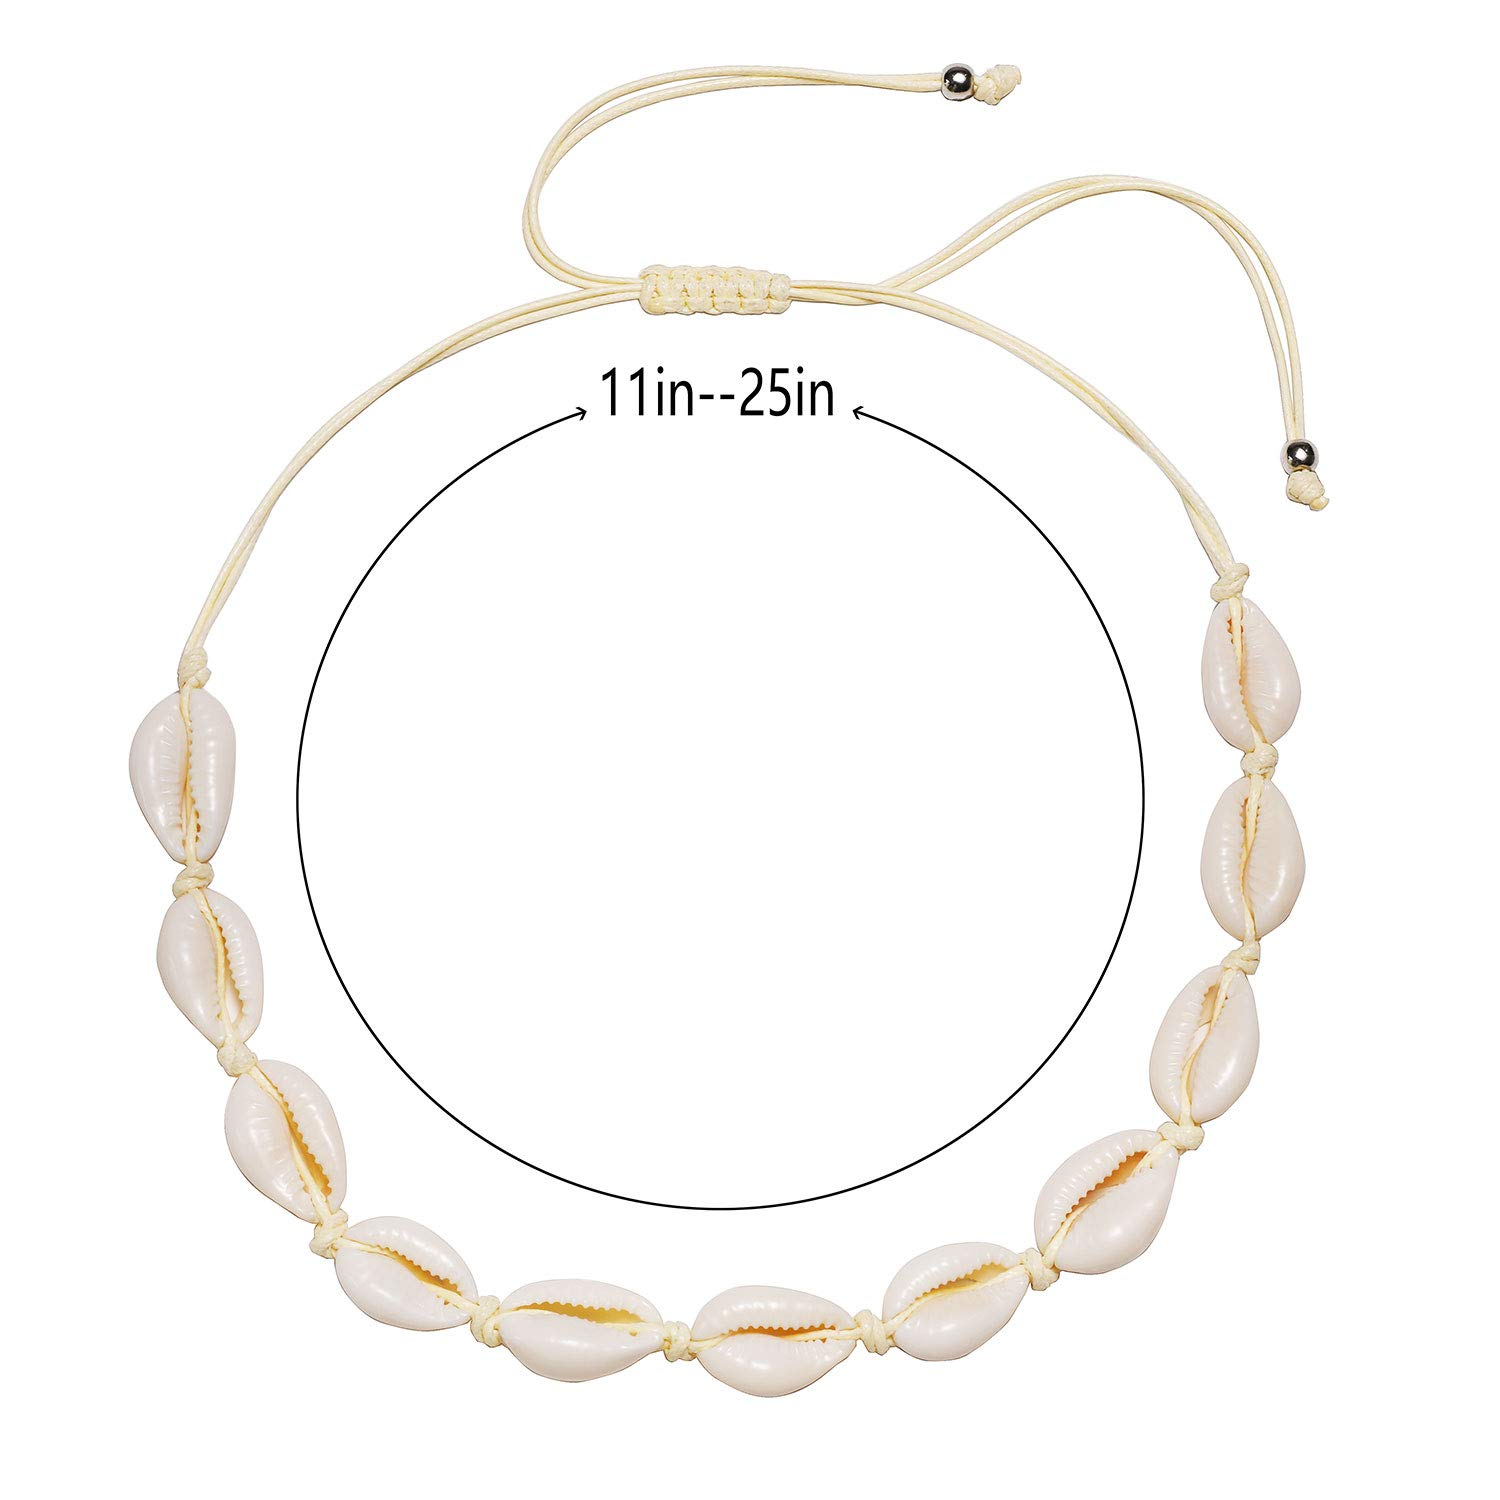 TKUAMIGO Shell Choker Necklace for Women Adjustable Natural Seashell Necklace Handmade Cowrie Shell Clavicle Necklace Beach Boho Jewelry